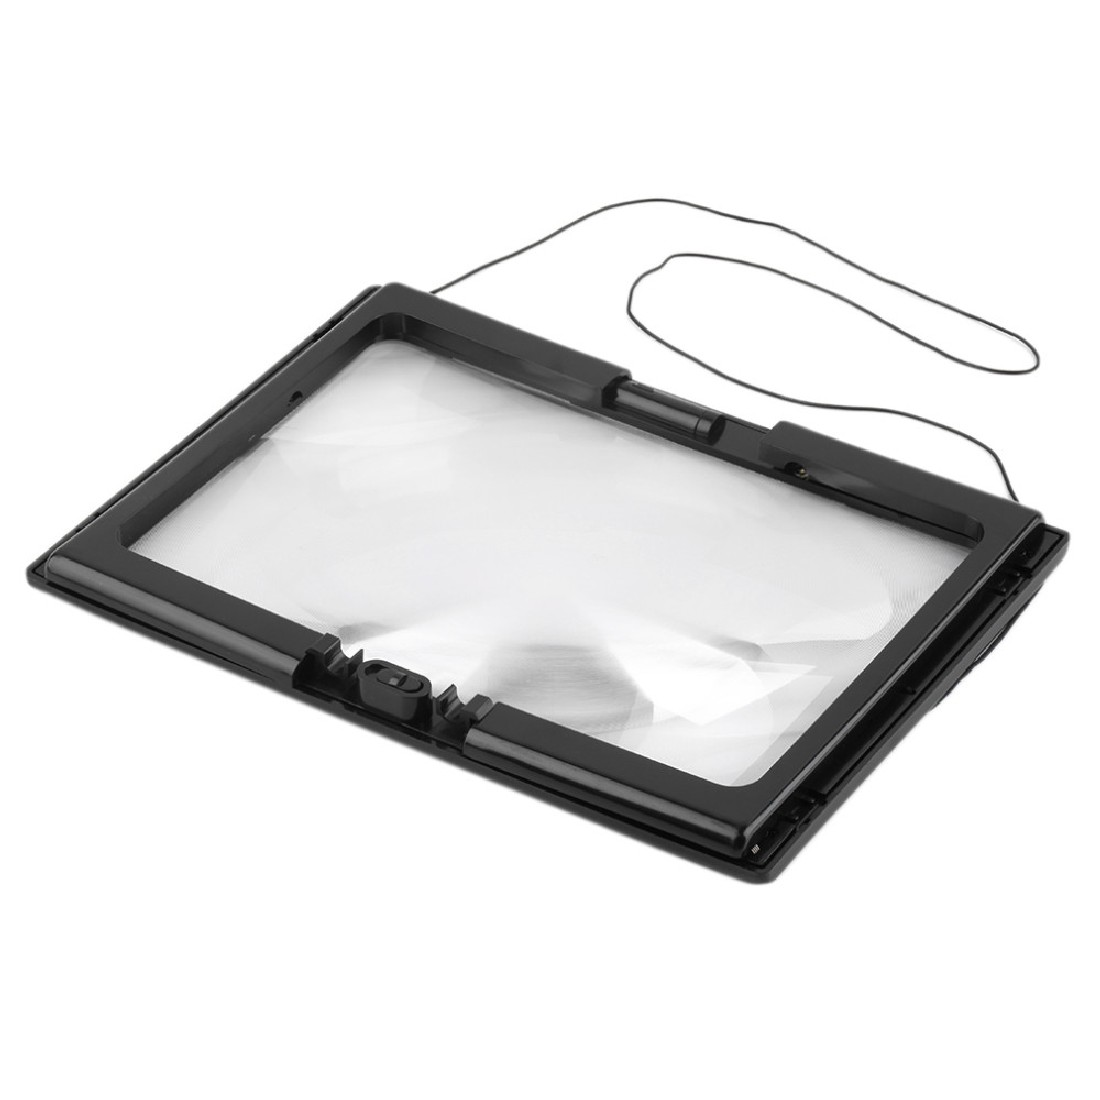 Magnifier 3X Giant Large Hands Free Desk Magnifying Glass With 4 LED Light for Reading Sewing Knitting